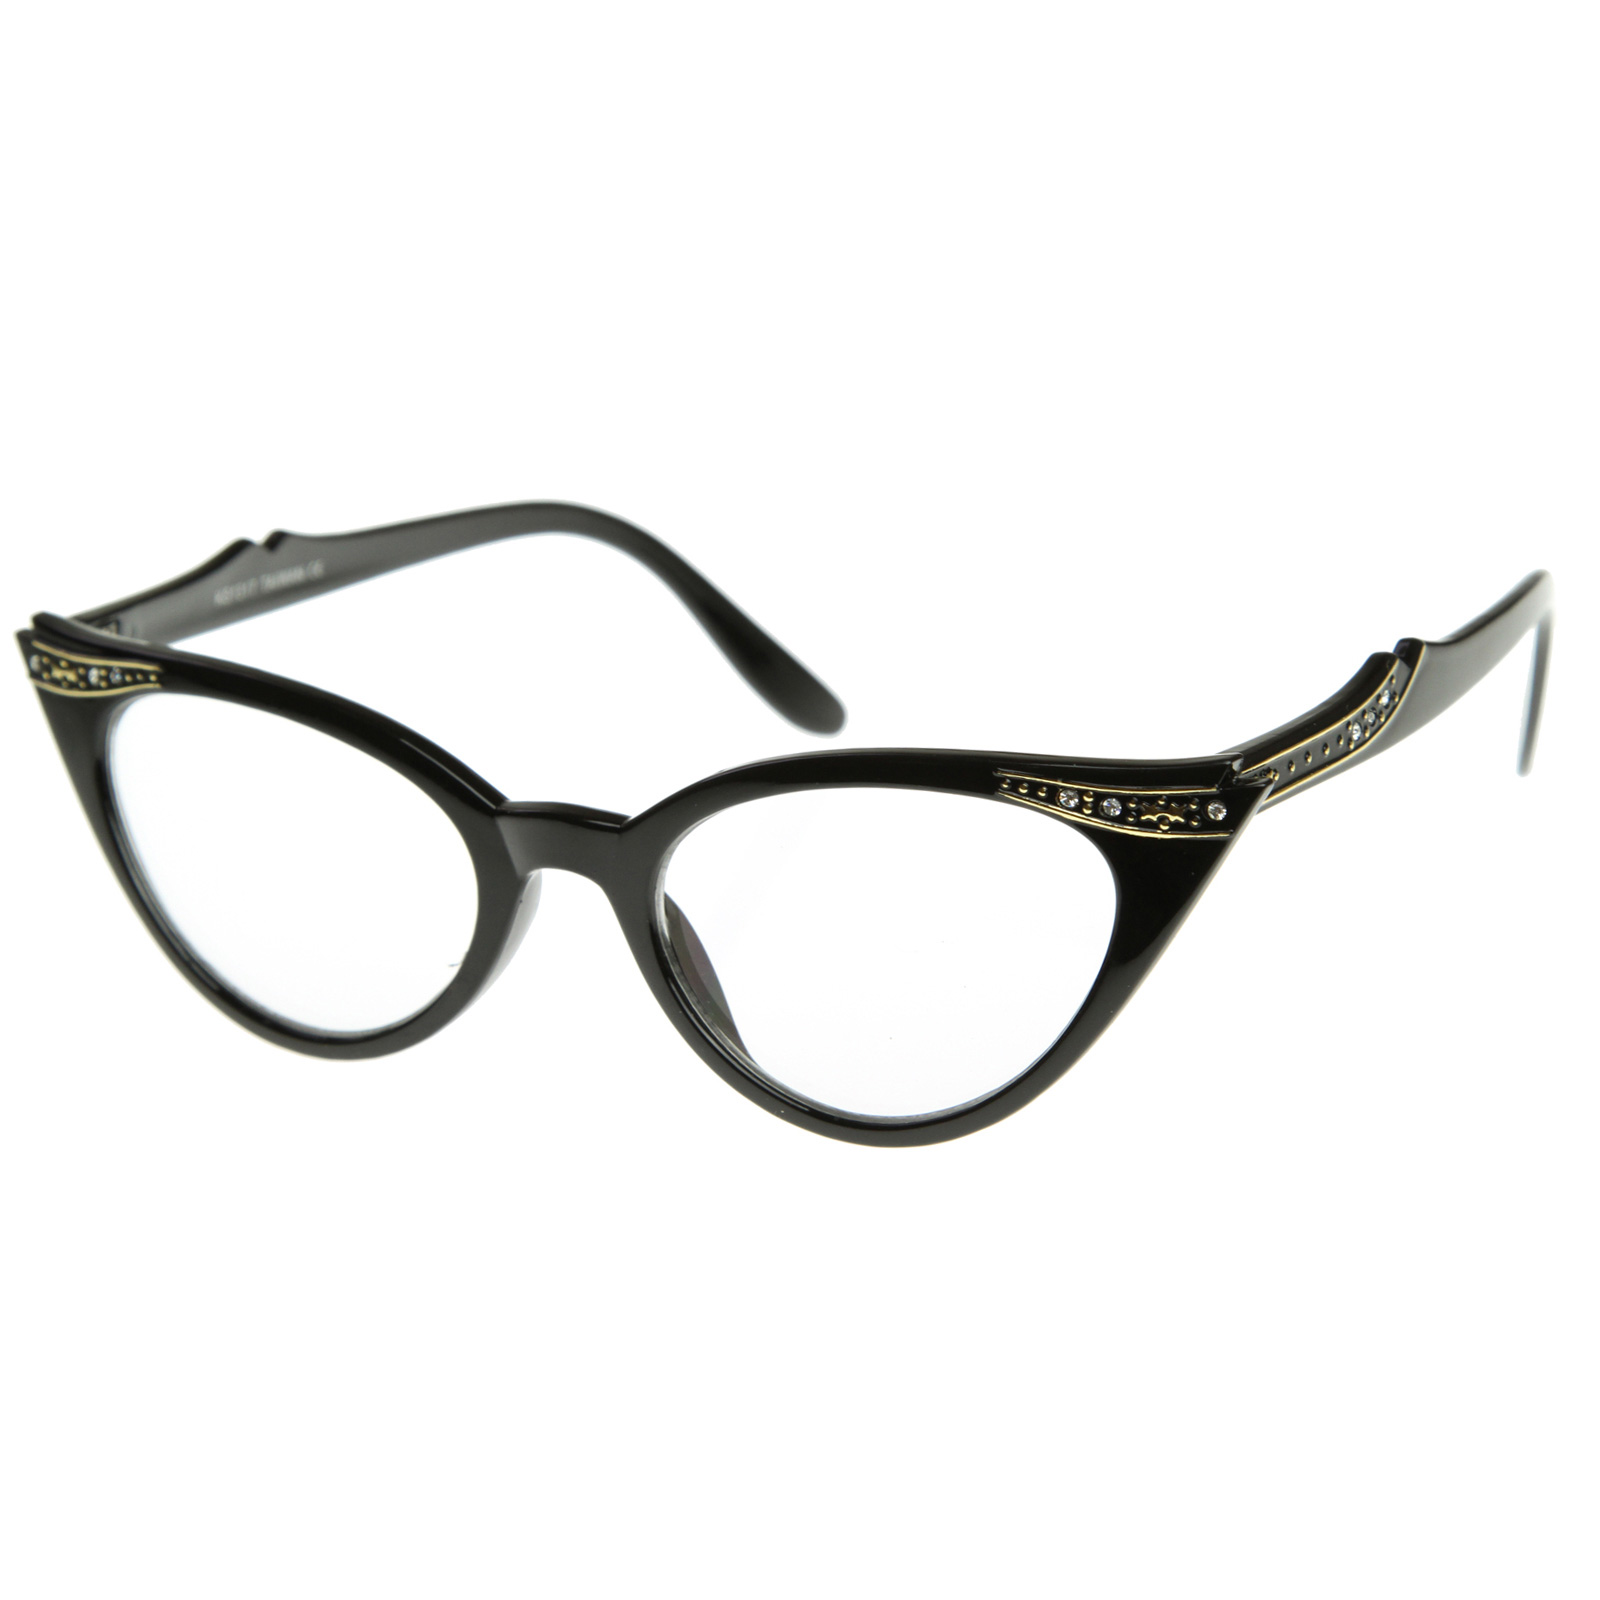 Vintage 1950s Inspired Fashion Clear Lens Cat Eye Glasses ...